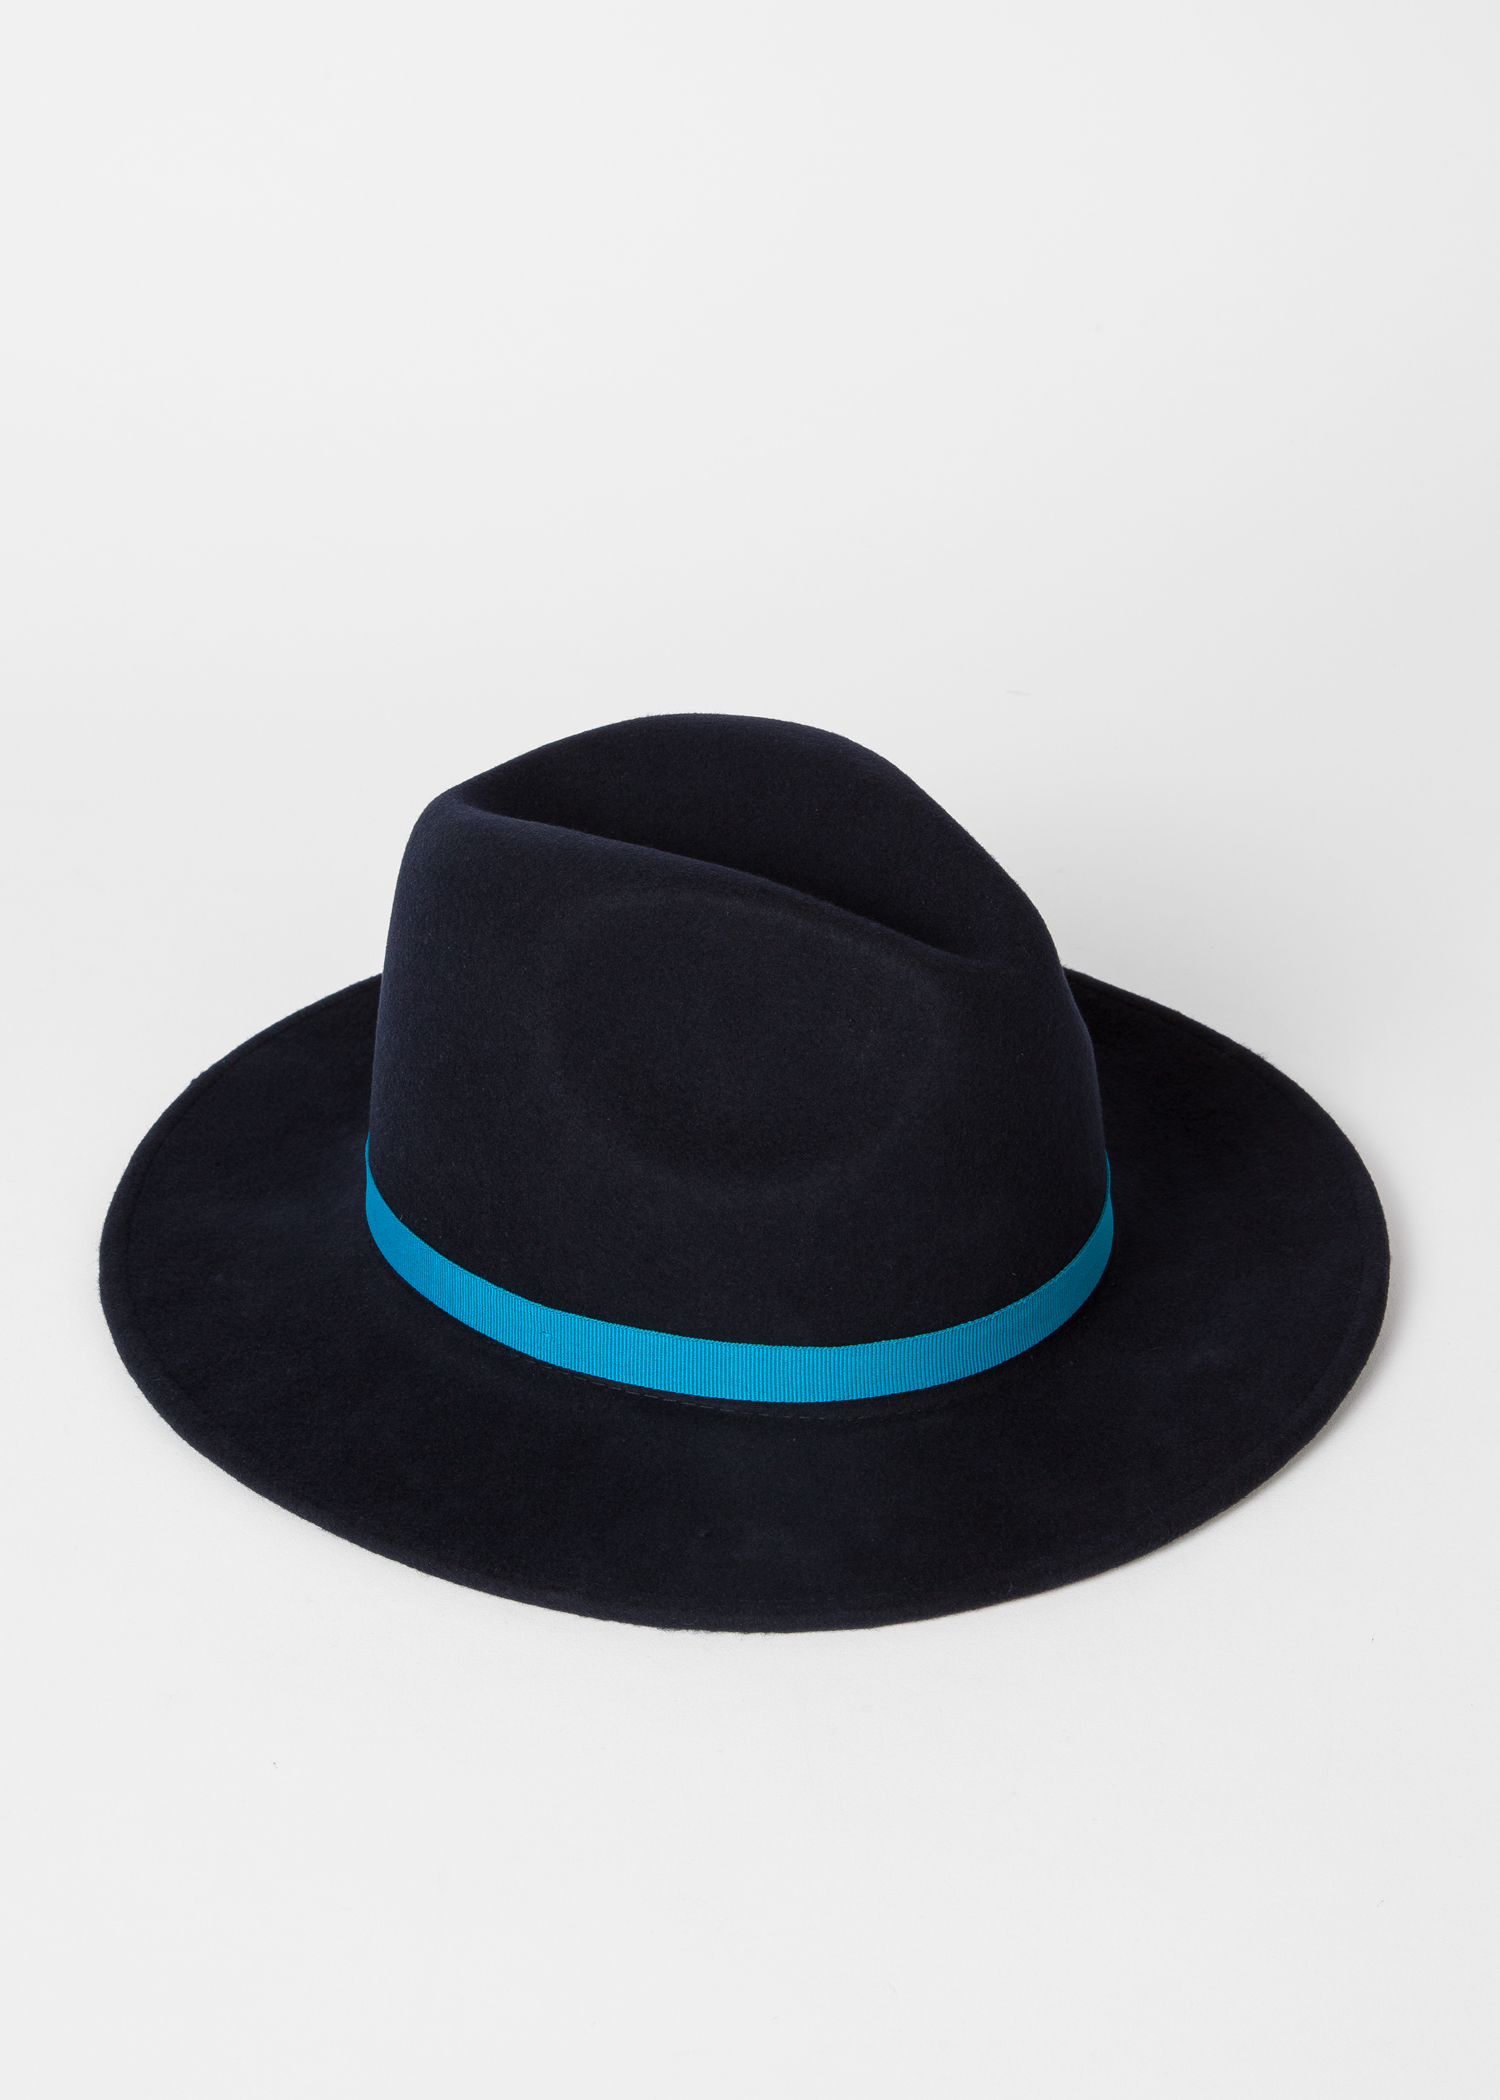 996b6a04 Angled View - Women's Navy Wool Felt Fedora Hat With Blue Headband Paul  Smith